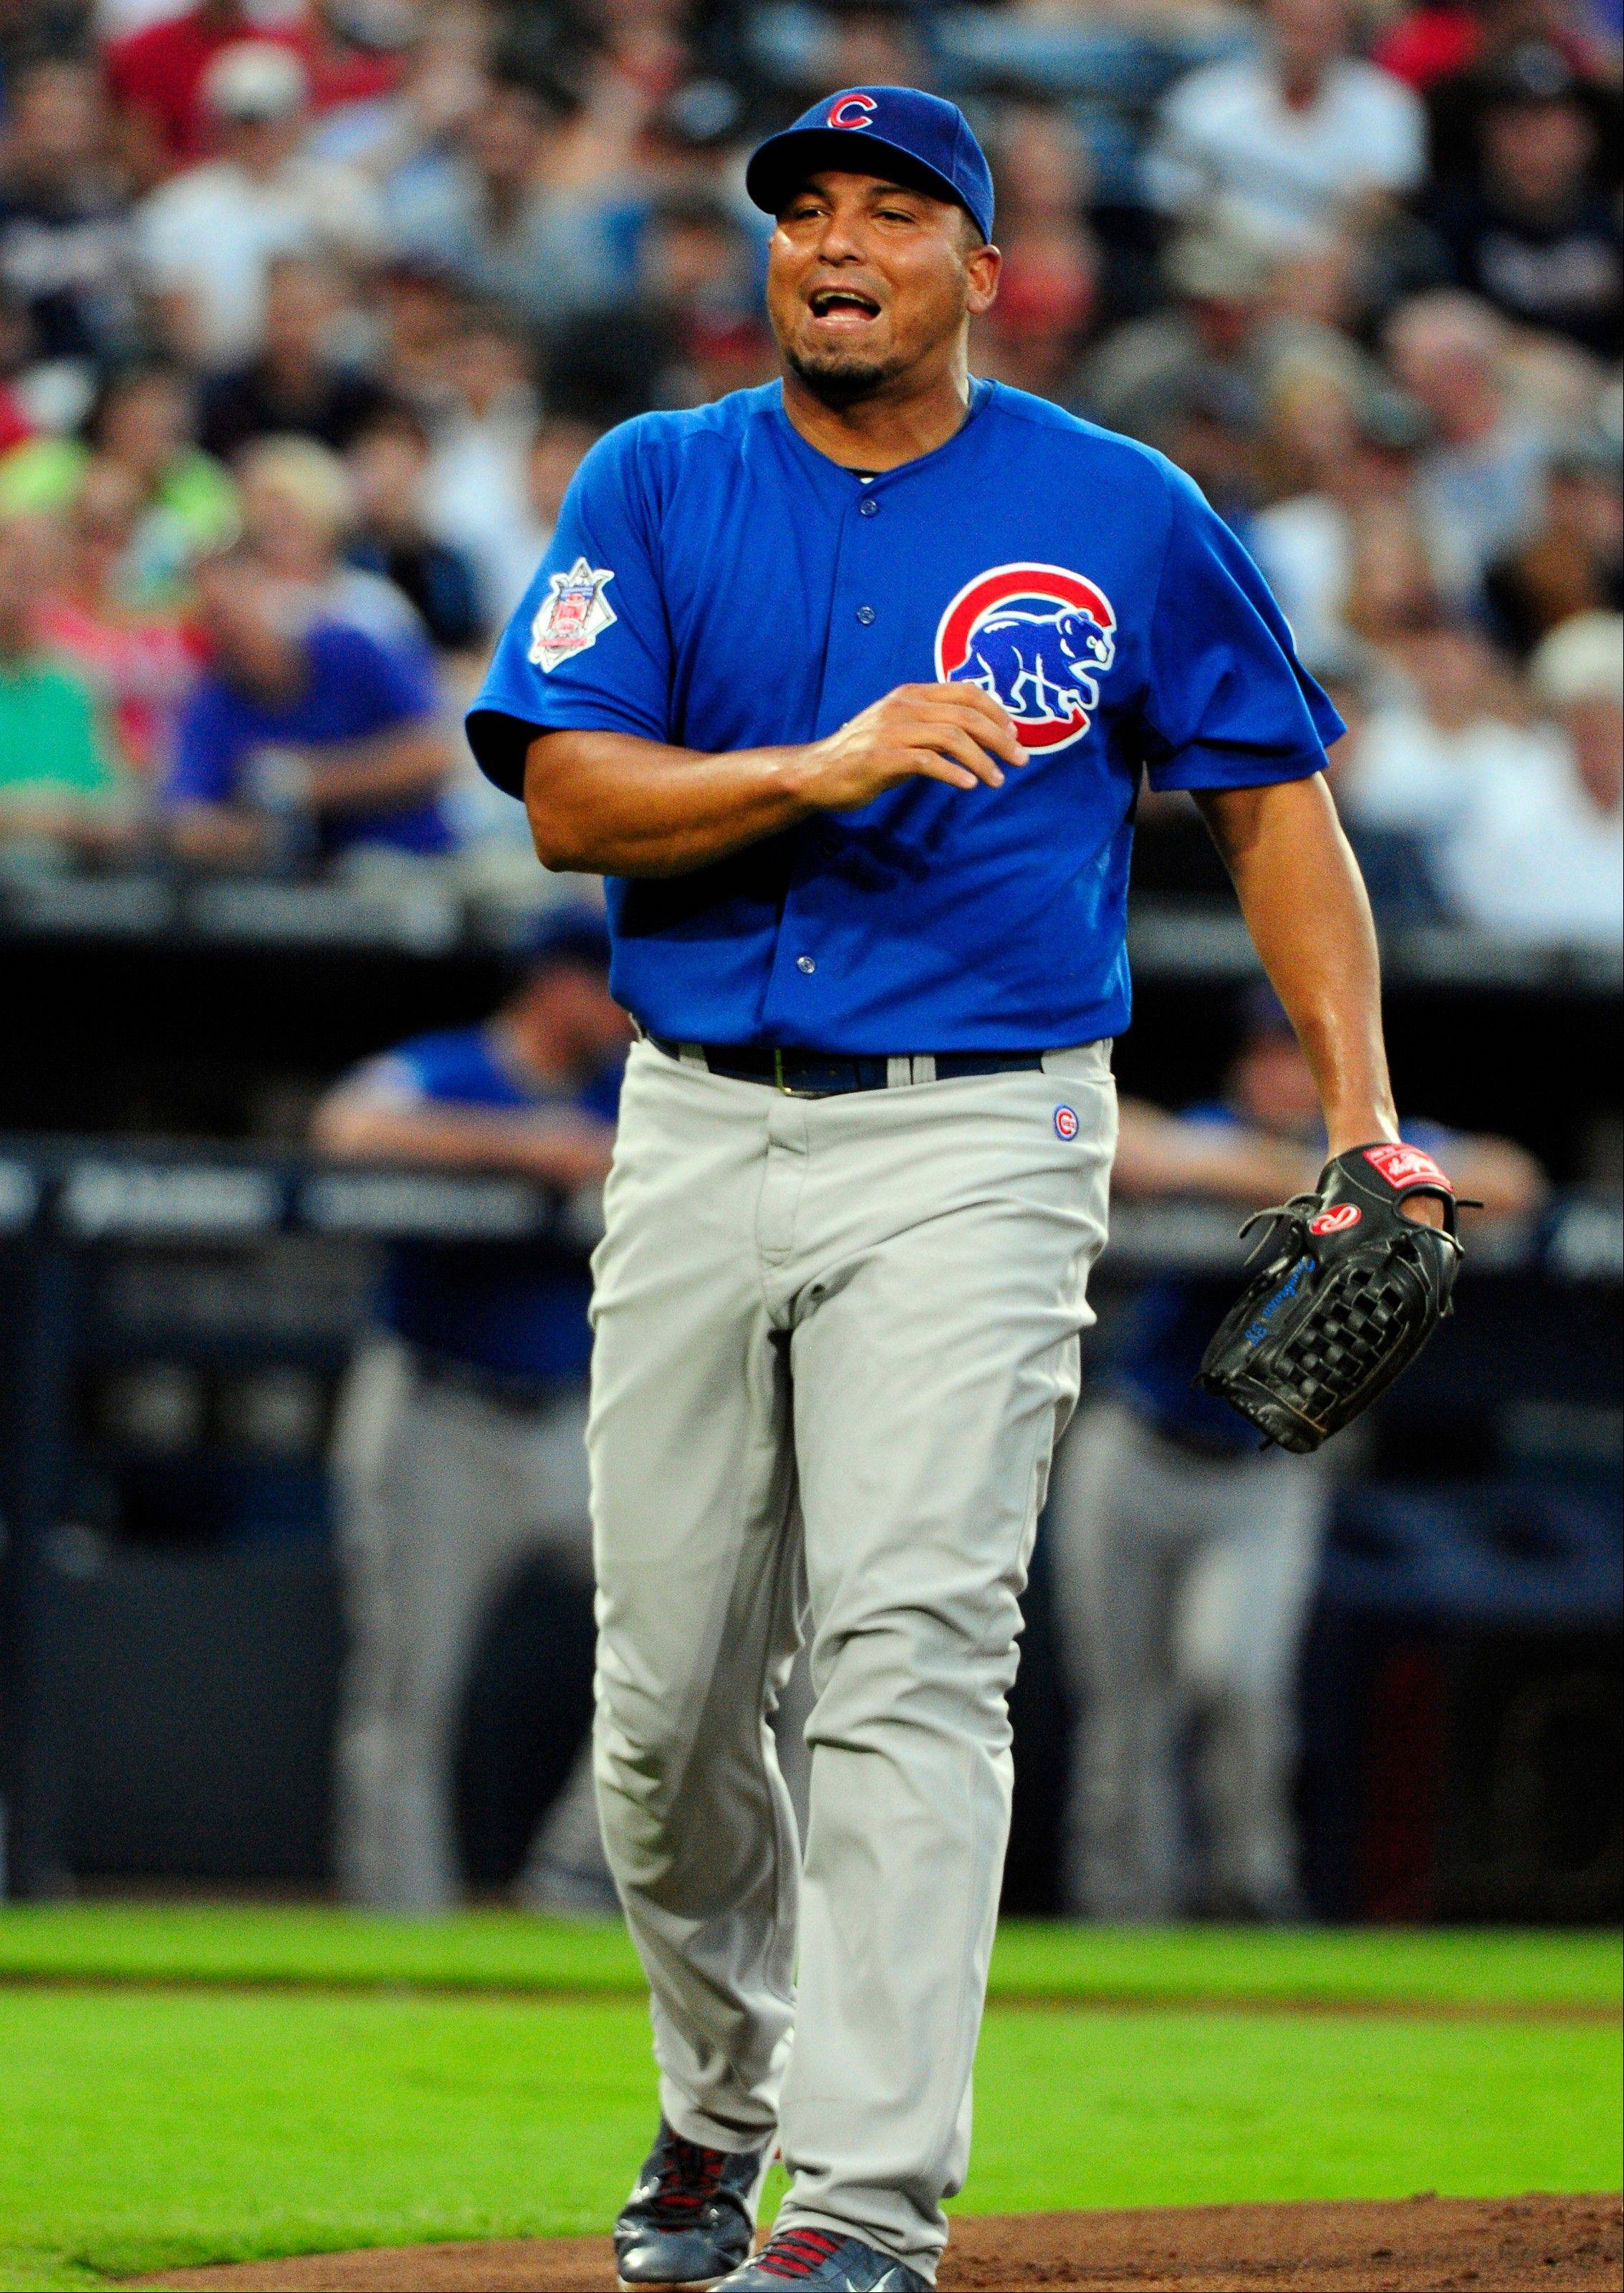 The Cubs placed pitcher Carlos Zambrano on MLB's disqualified list, which shuts him down for 30 days without pay while his comments and actions from Friday's game in Atlanta are reviewed. Zambrano left the game -- and the Cubs -- after giving up 5 home runs.